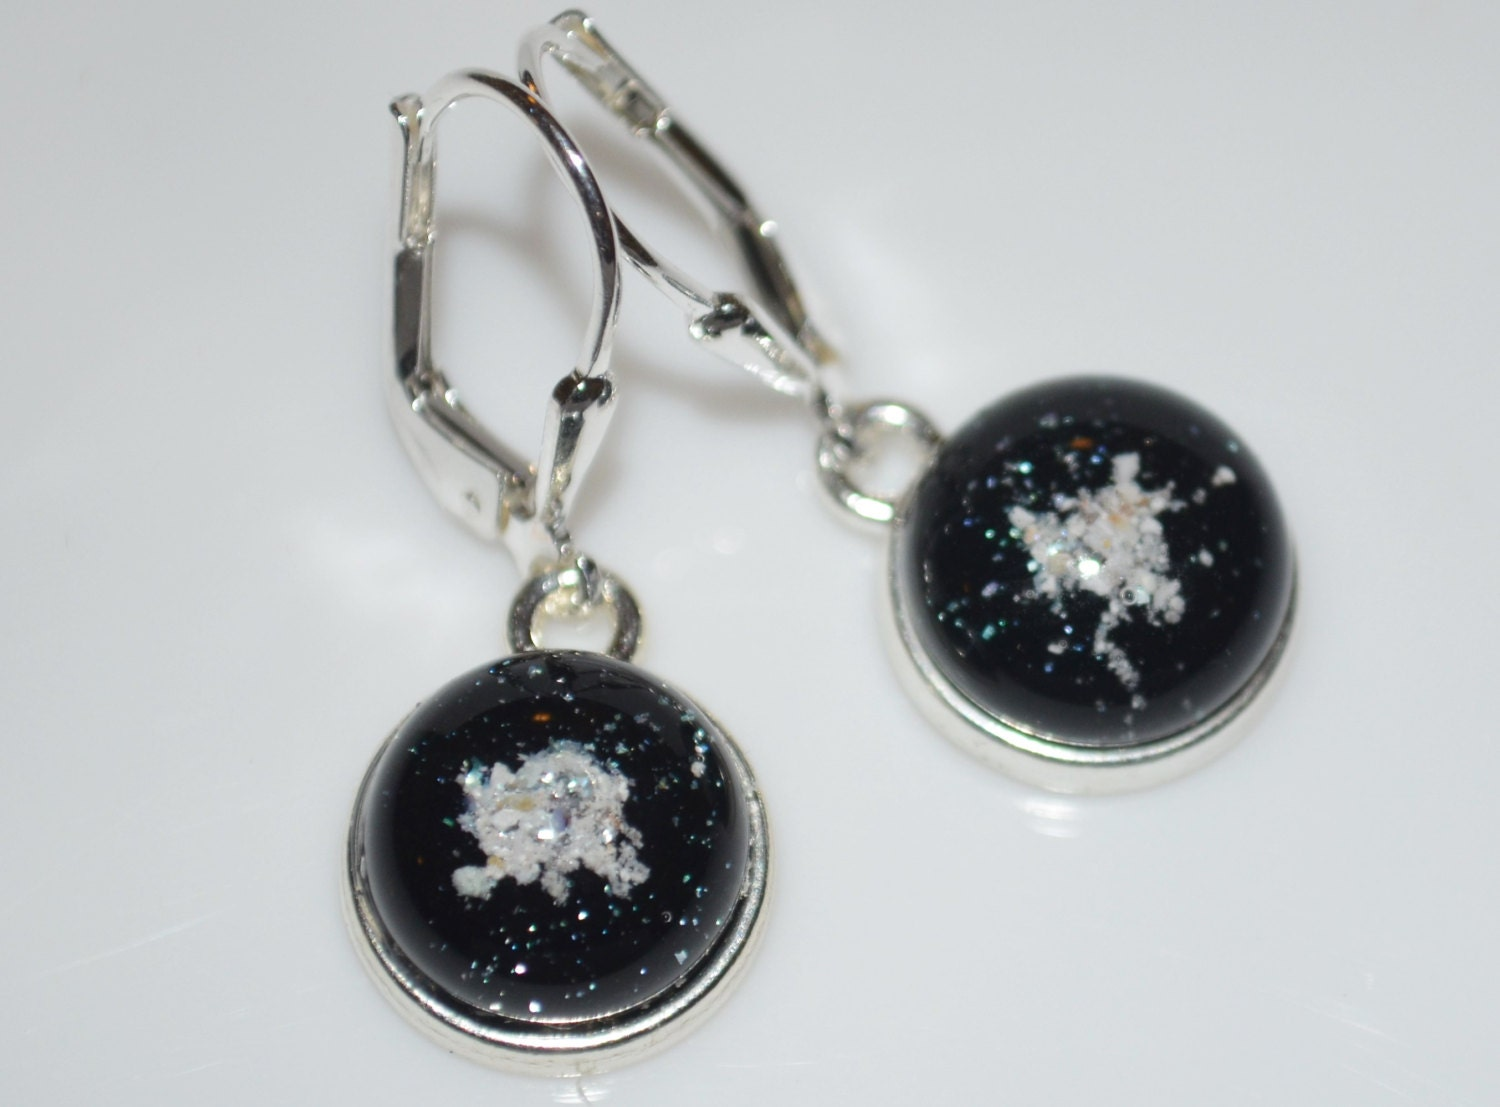 Pet cremation jewelry earrings fused glass by for Cremation jewelry for pets ashes